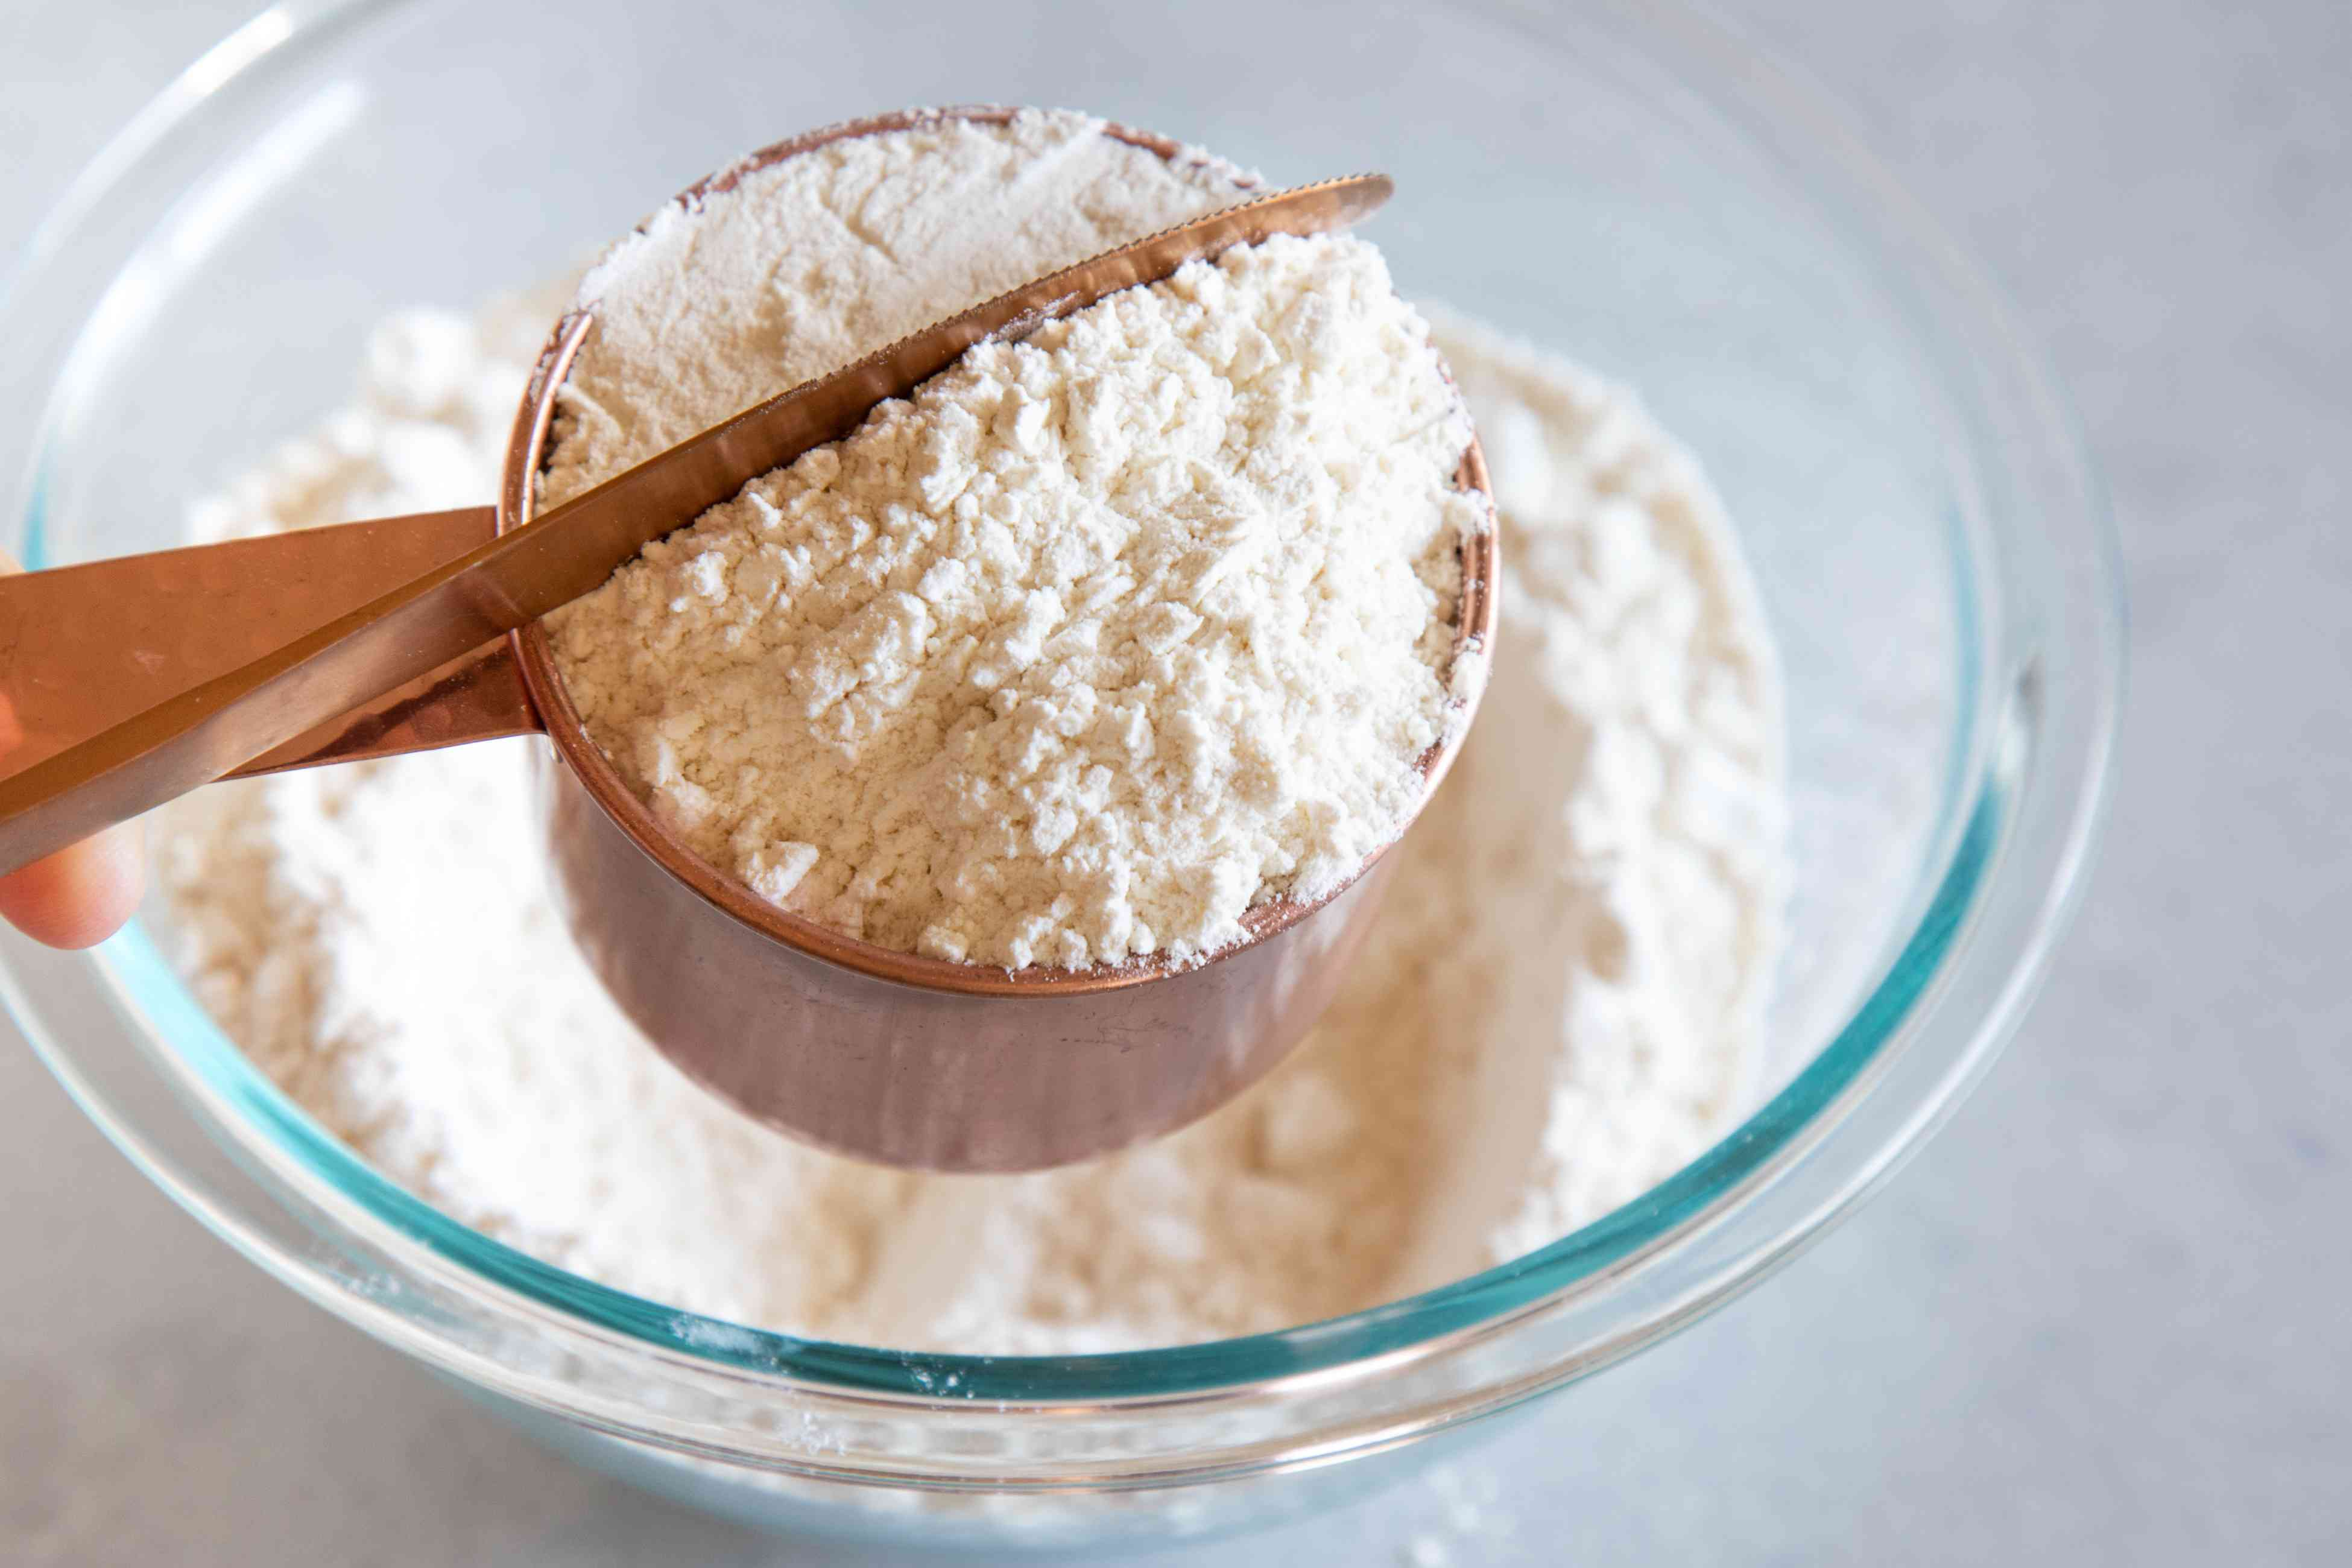 How to measure flour by using a knife to level off the heaping cup of flour.